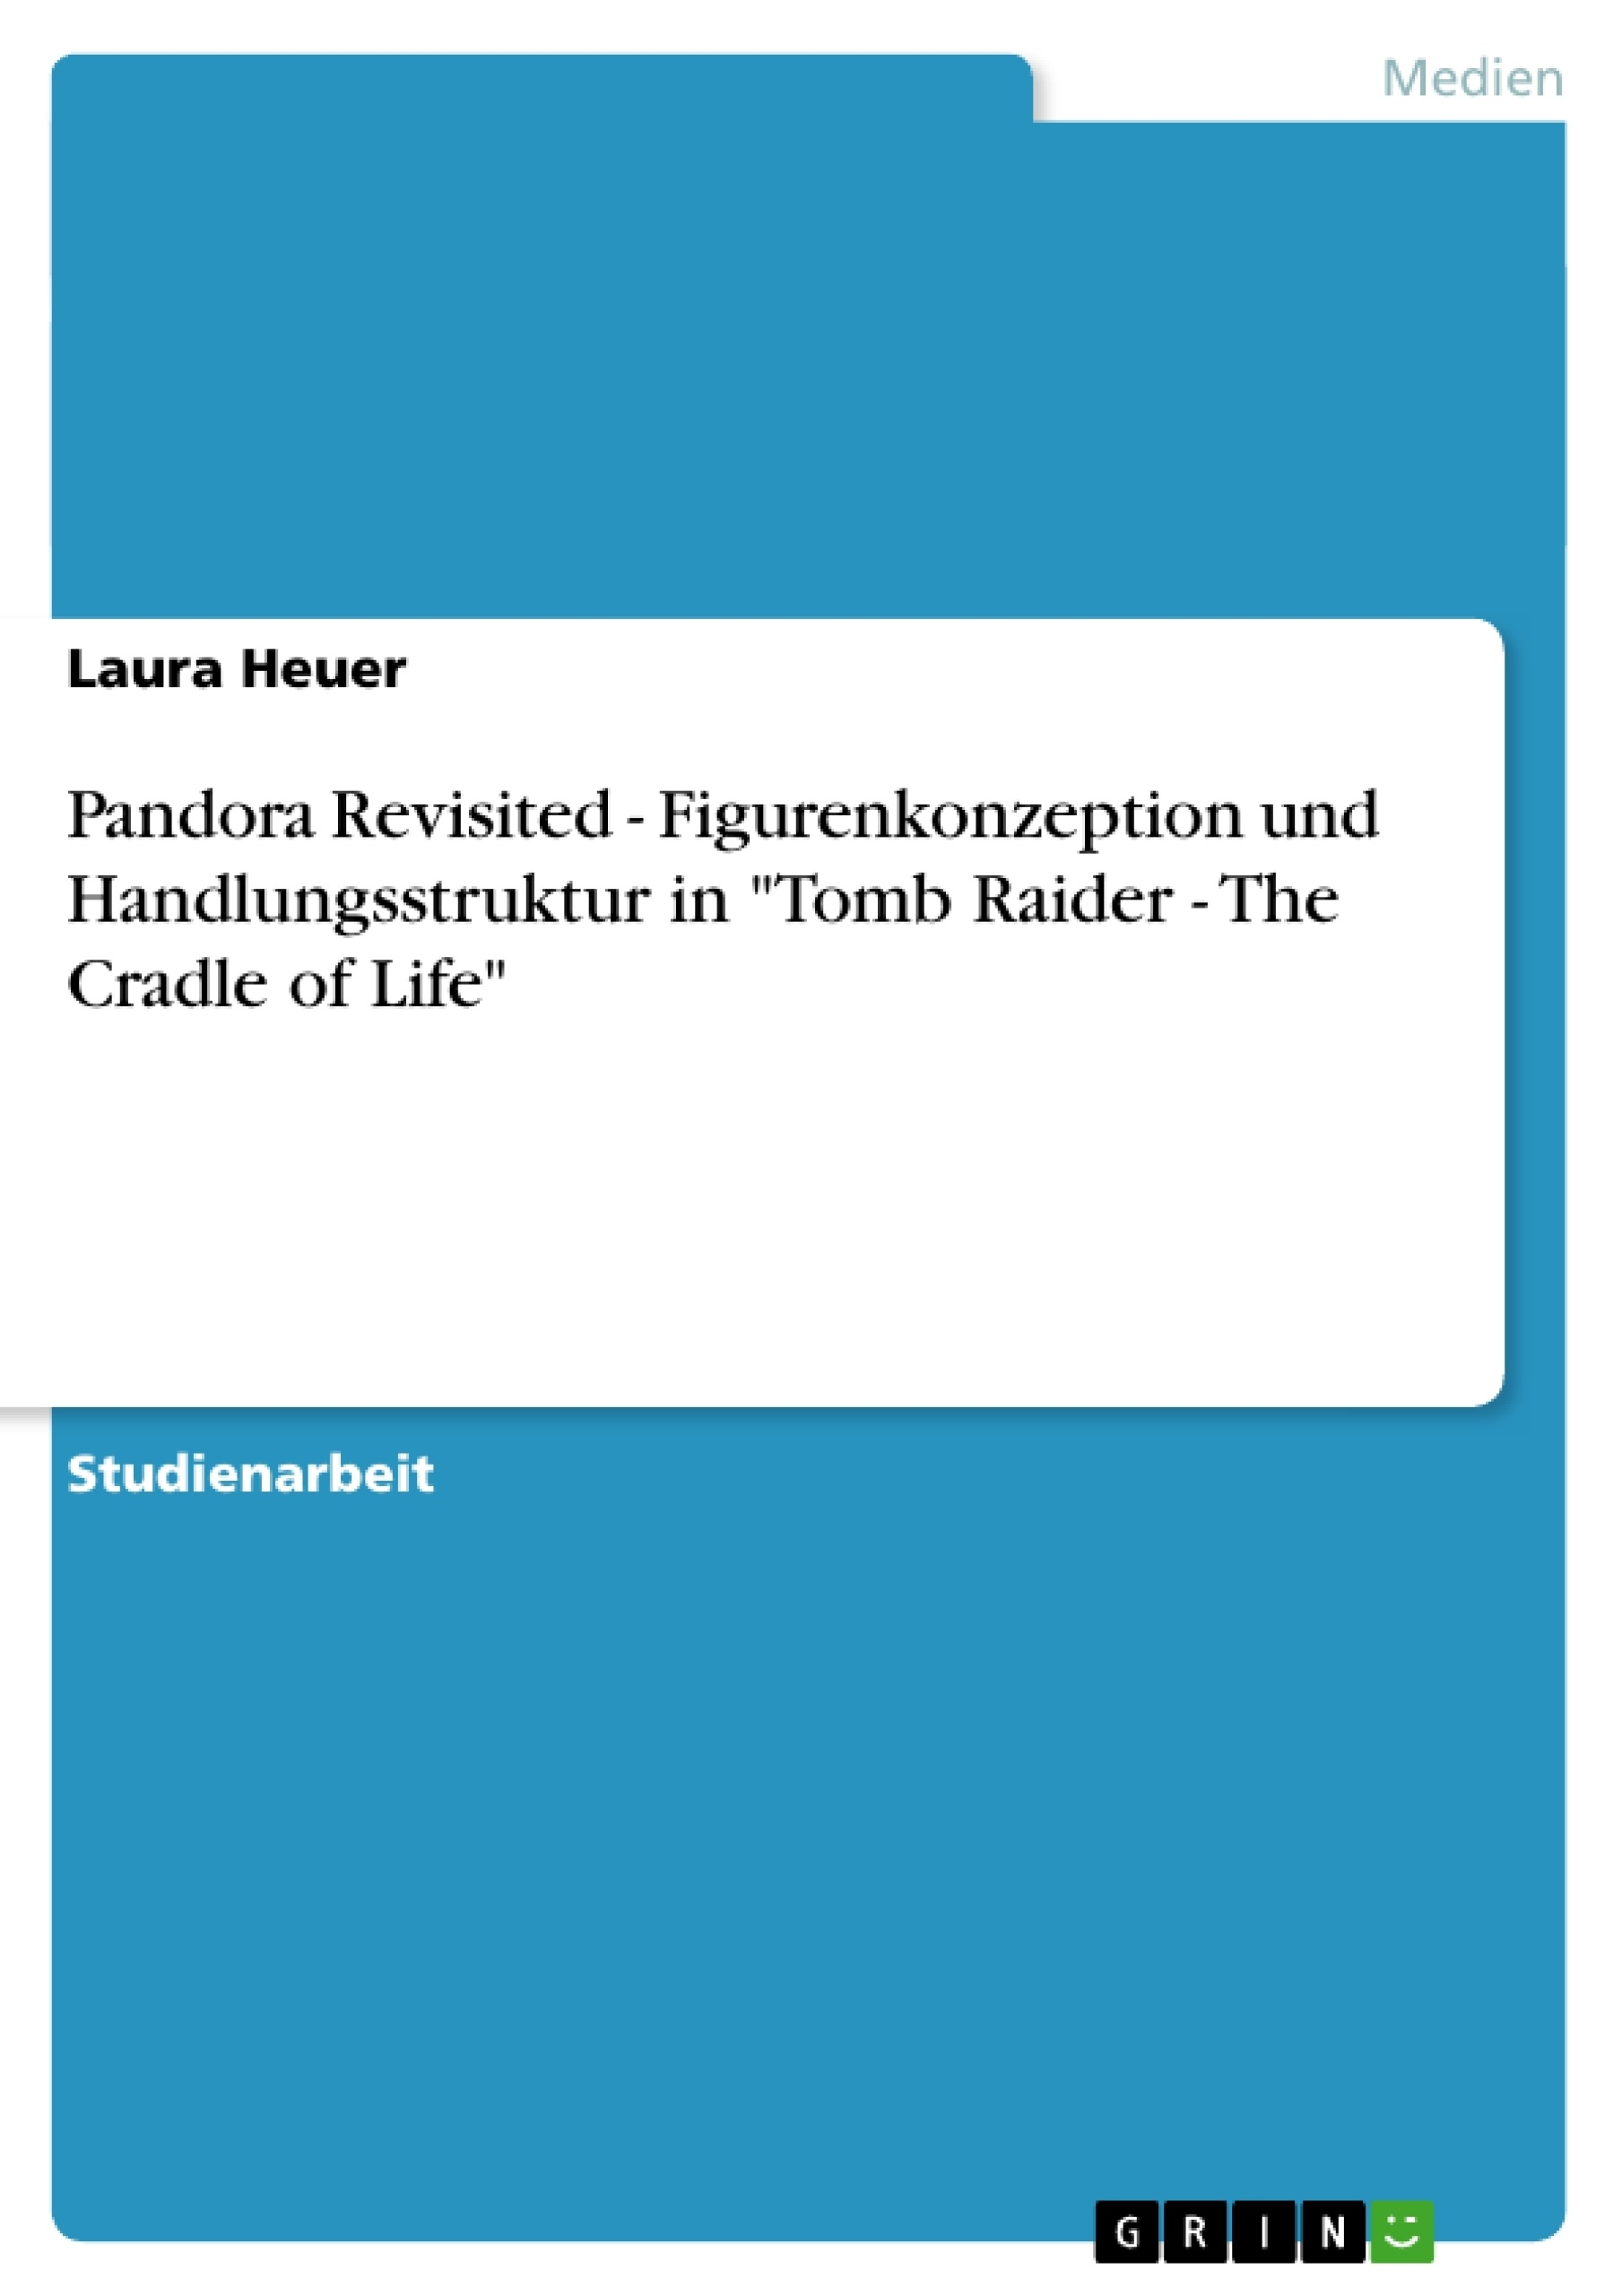 "Titel: Pandora Revisited - Figurenkonzeption und Handlungsstruktur in ""Tomb Raider - The Cradle of Life"""